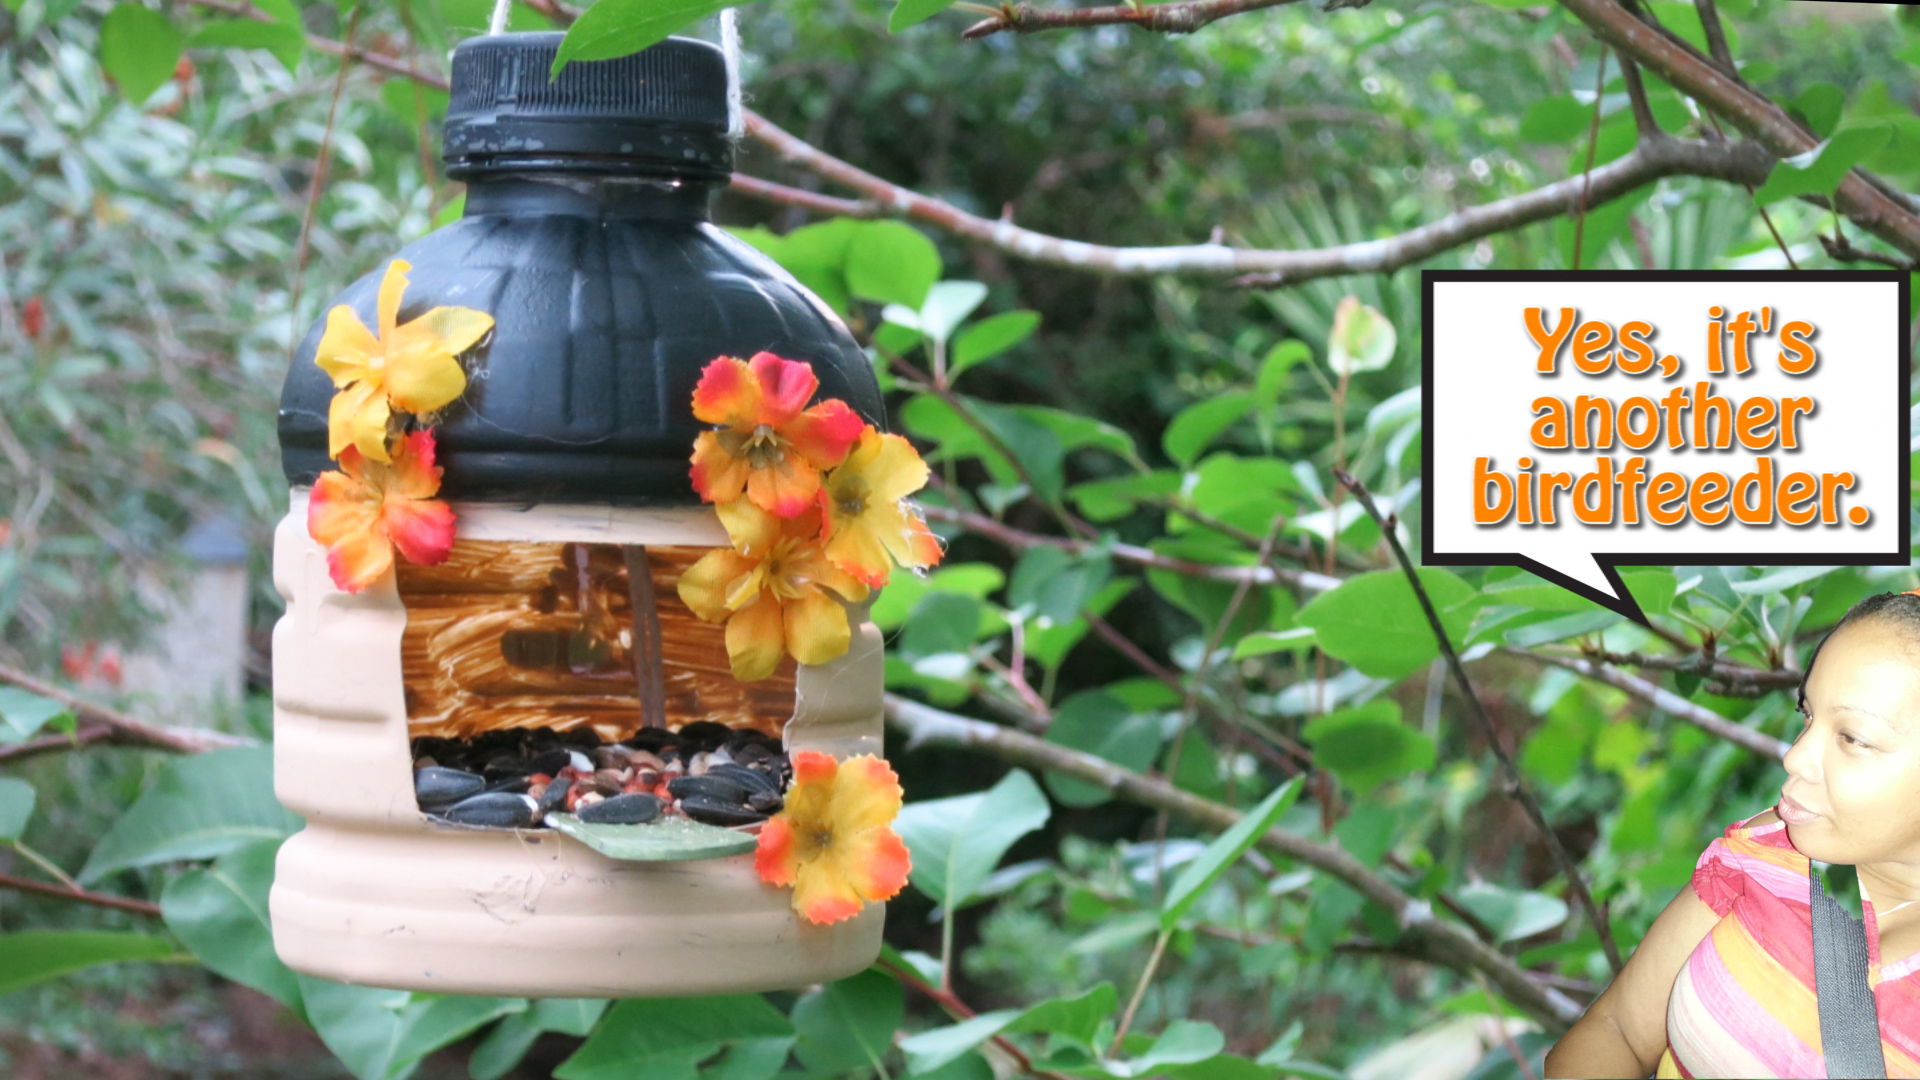 Hut House Bird Feeder Made from a Recycled Arizona Bottle.jpg